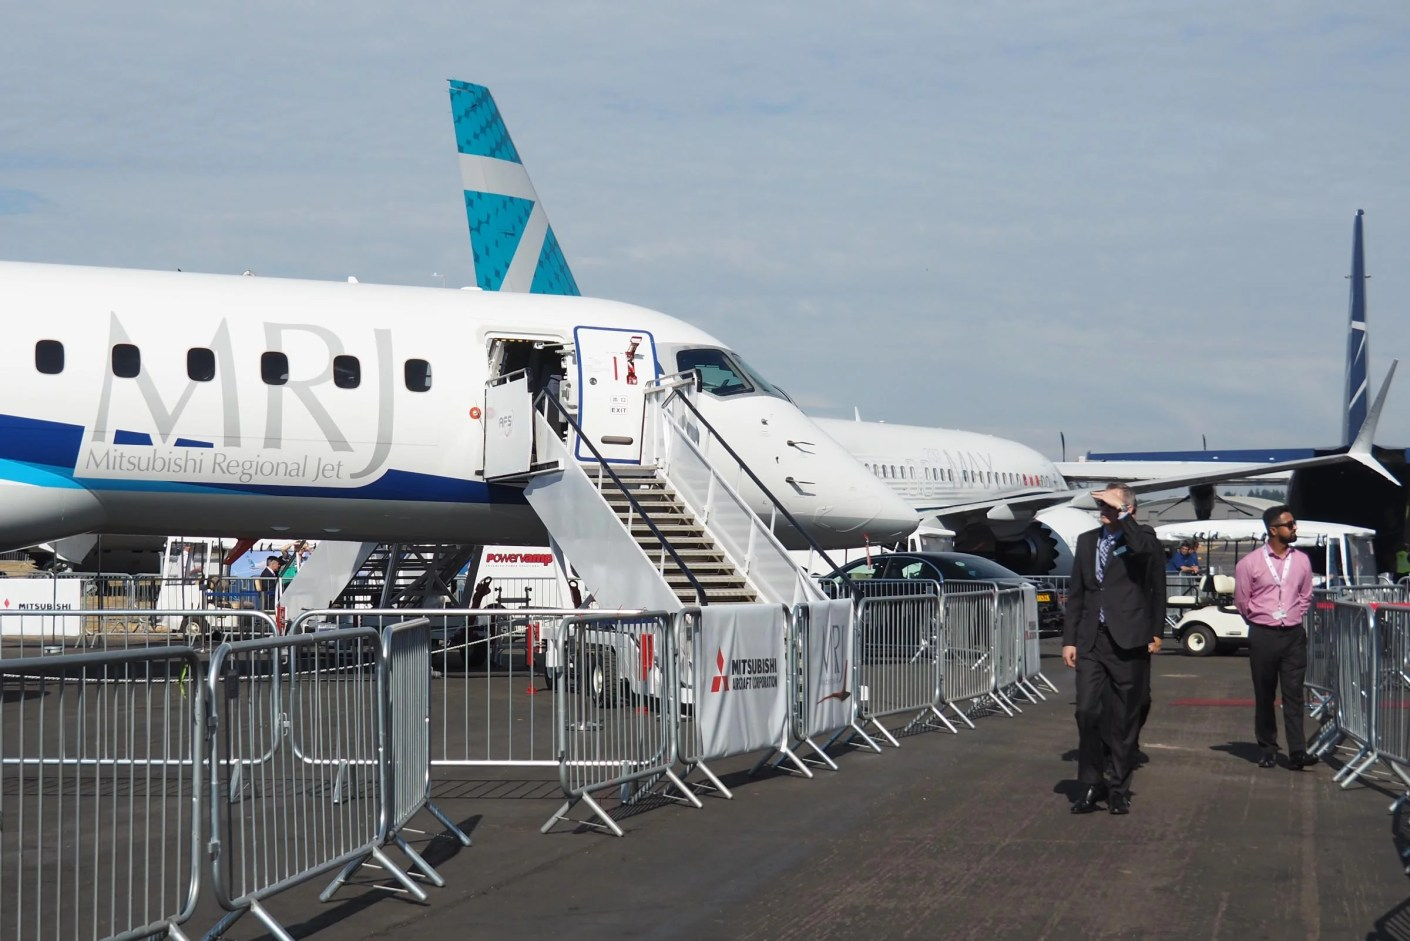 A Mitsubishi MRJ regional jet parked close to a Boeing 737 MAX 7 at the Farnborough Air Show (Photo by Zach Honig / The Points Guy)